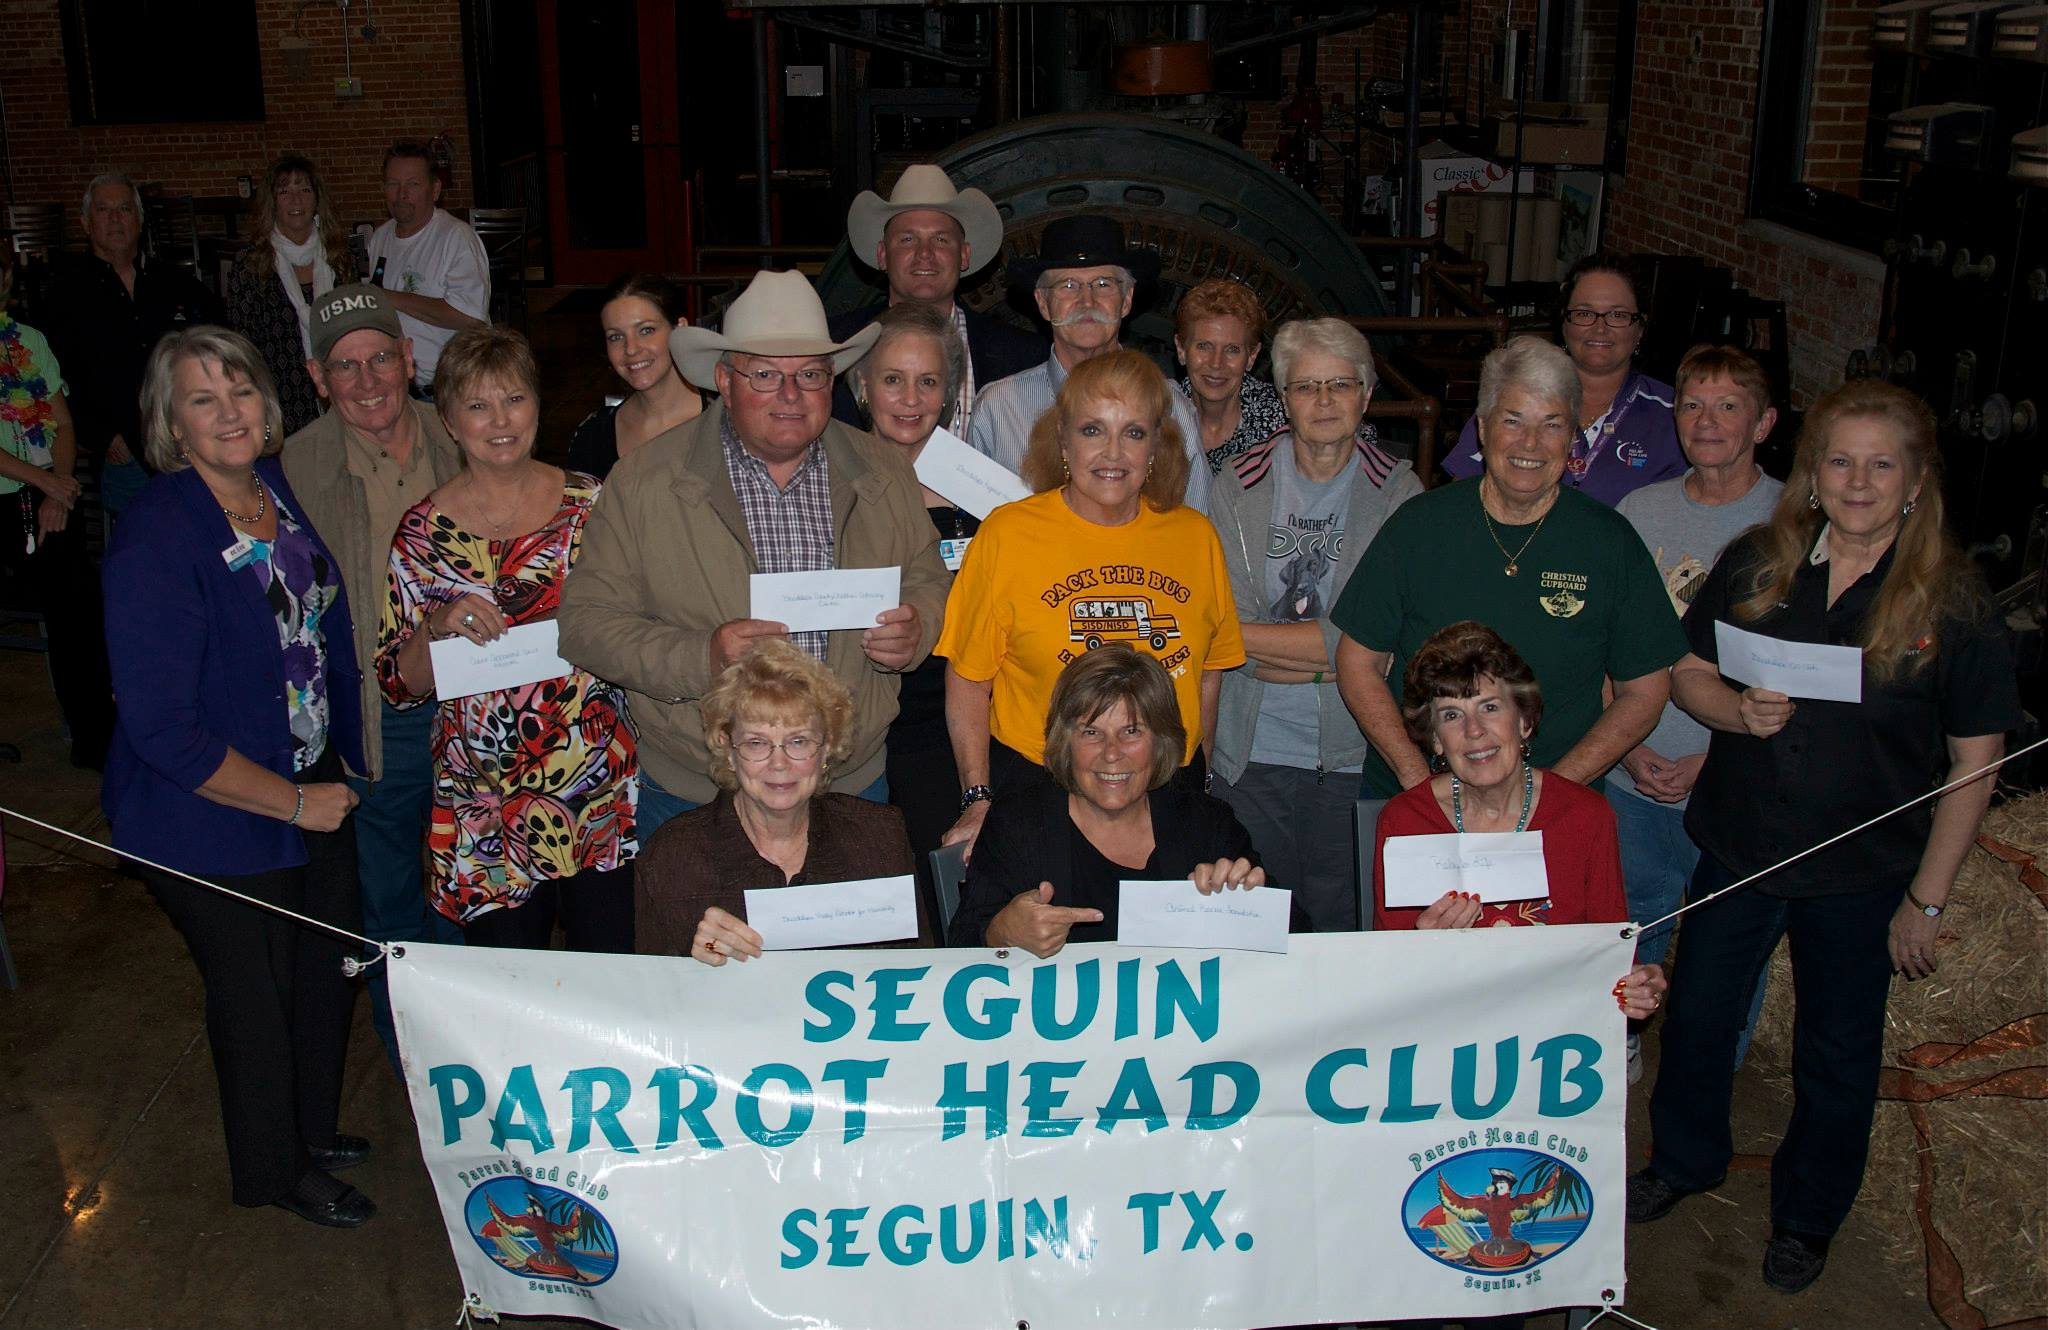 Seguin Parrot Head Club